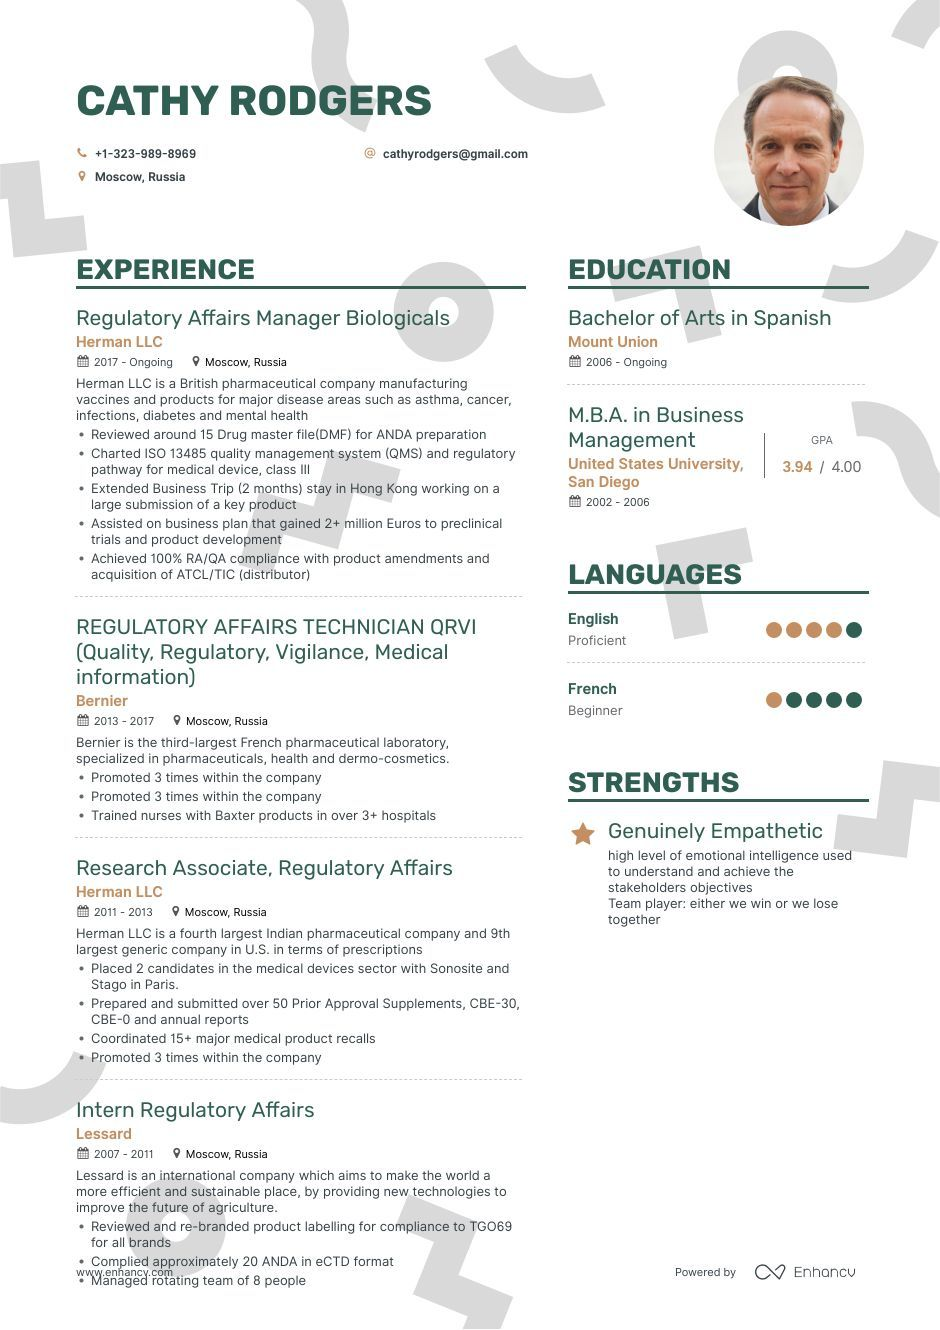 Regulatory Affairs Resume Example And Guide For 2019 Regulatory Affairs Resume Examples Regulatory